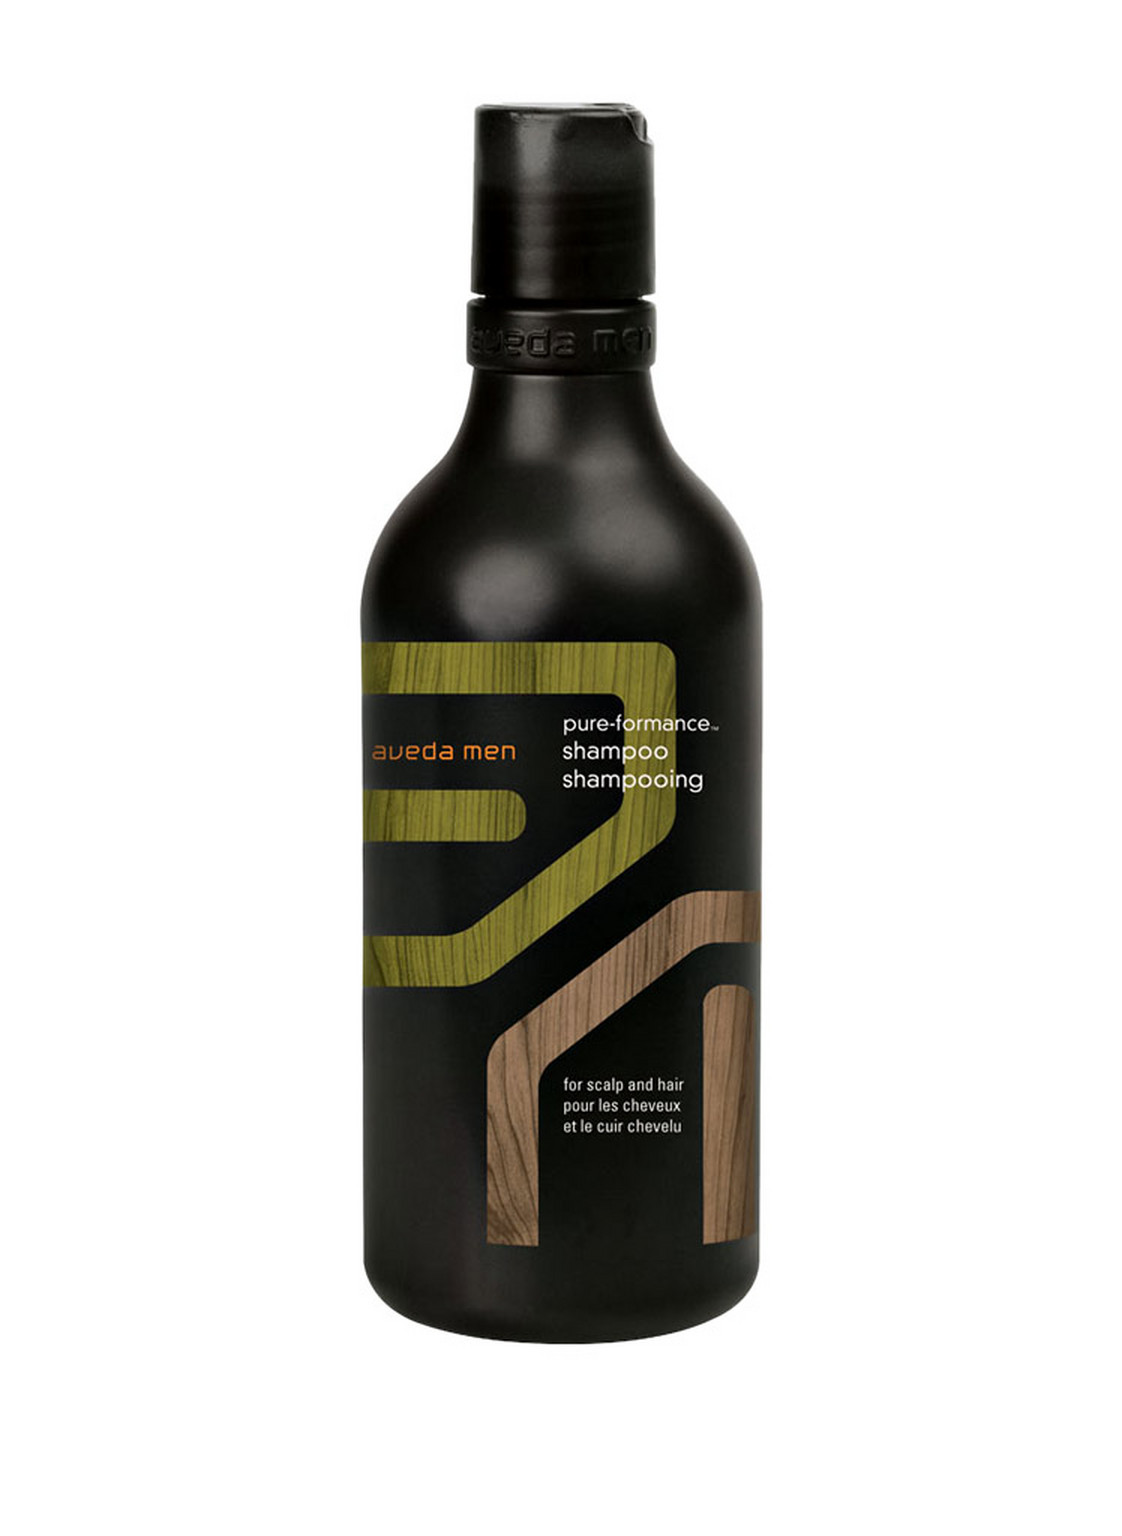 Aveda Aveda Men Pure-Formance Shampoo 300 ml von AVEDA